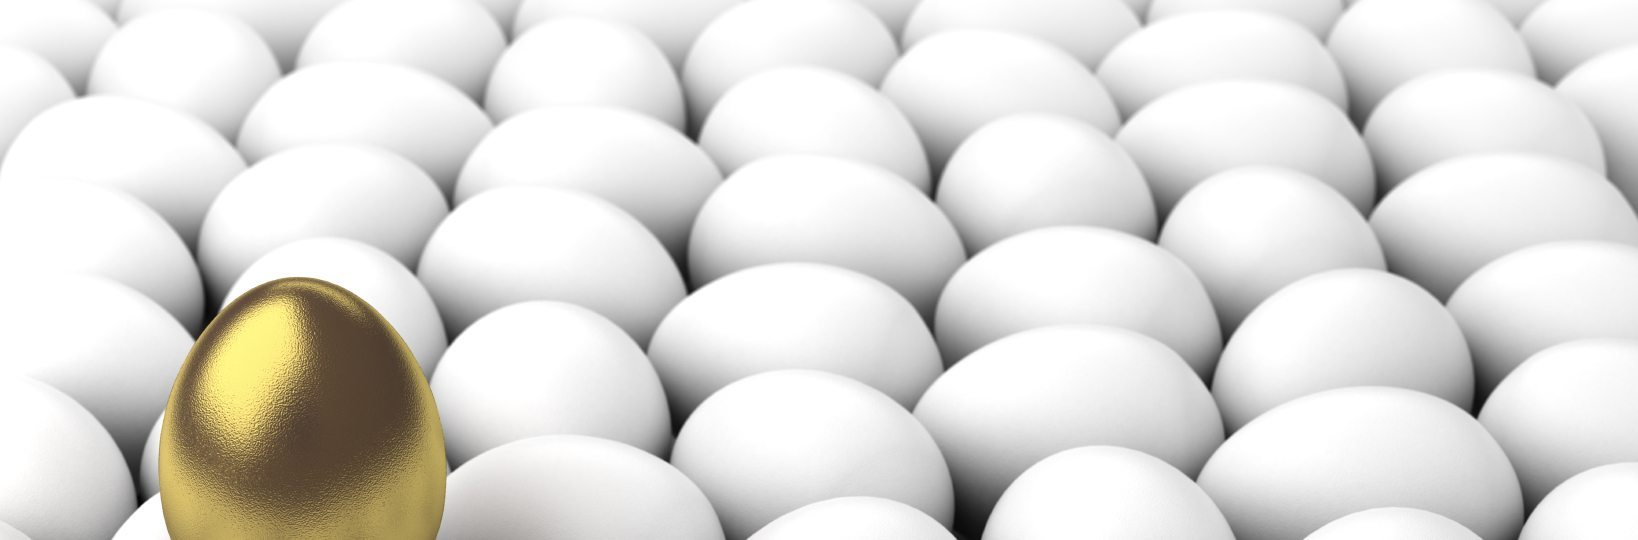 Business Grants And Finding the Golden Egg